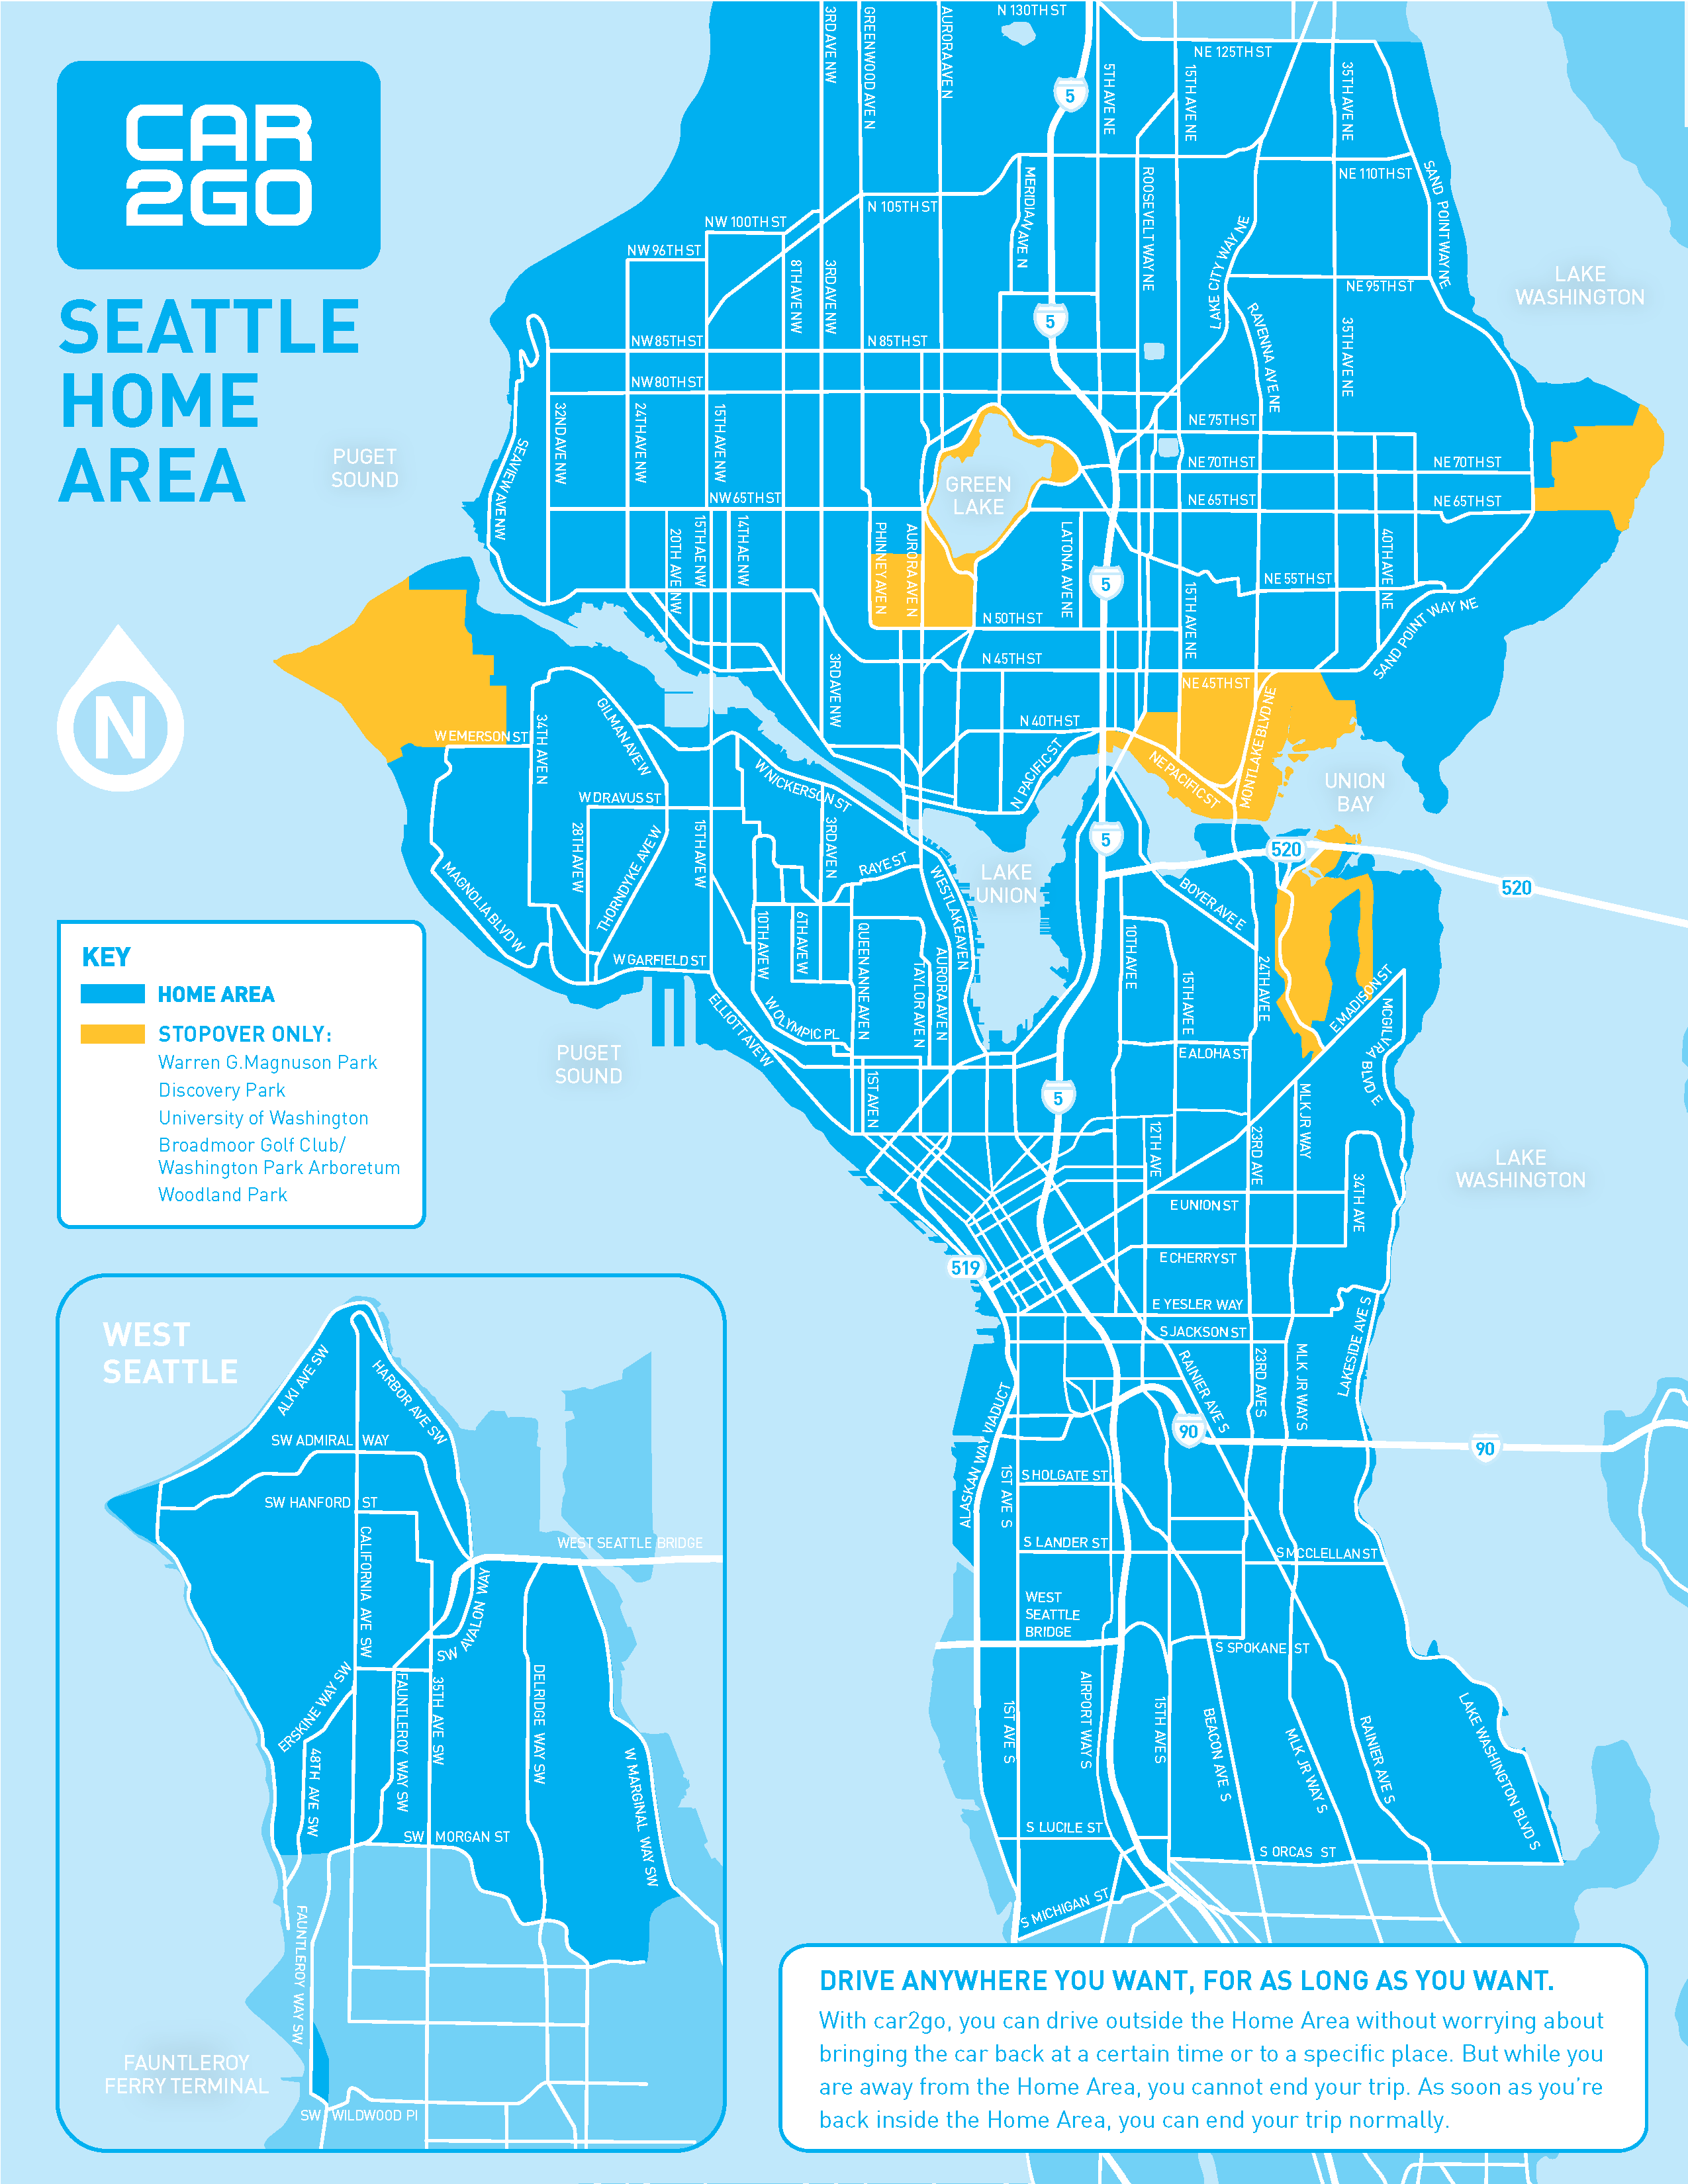 Transportation Committee Approves Car2go Expansion Seattle Transit